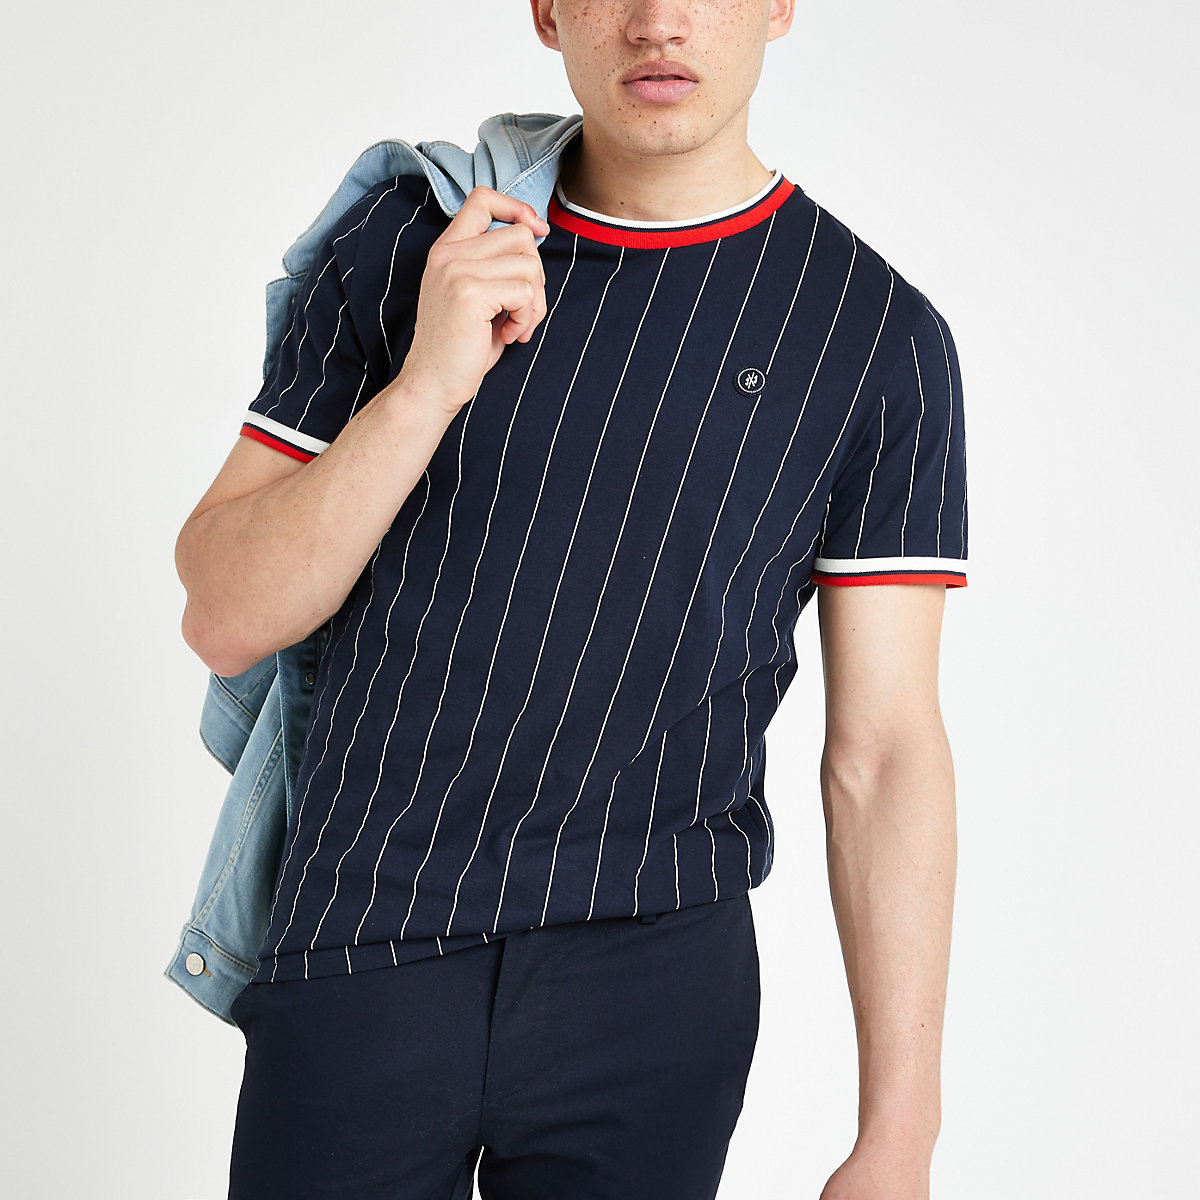 Jack and Jones navy pinstripe T-shirt